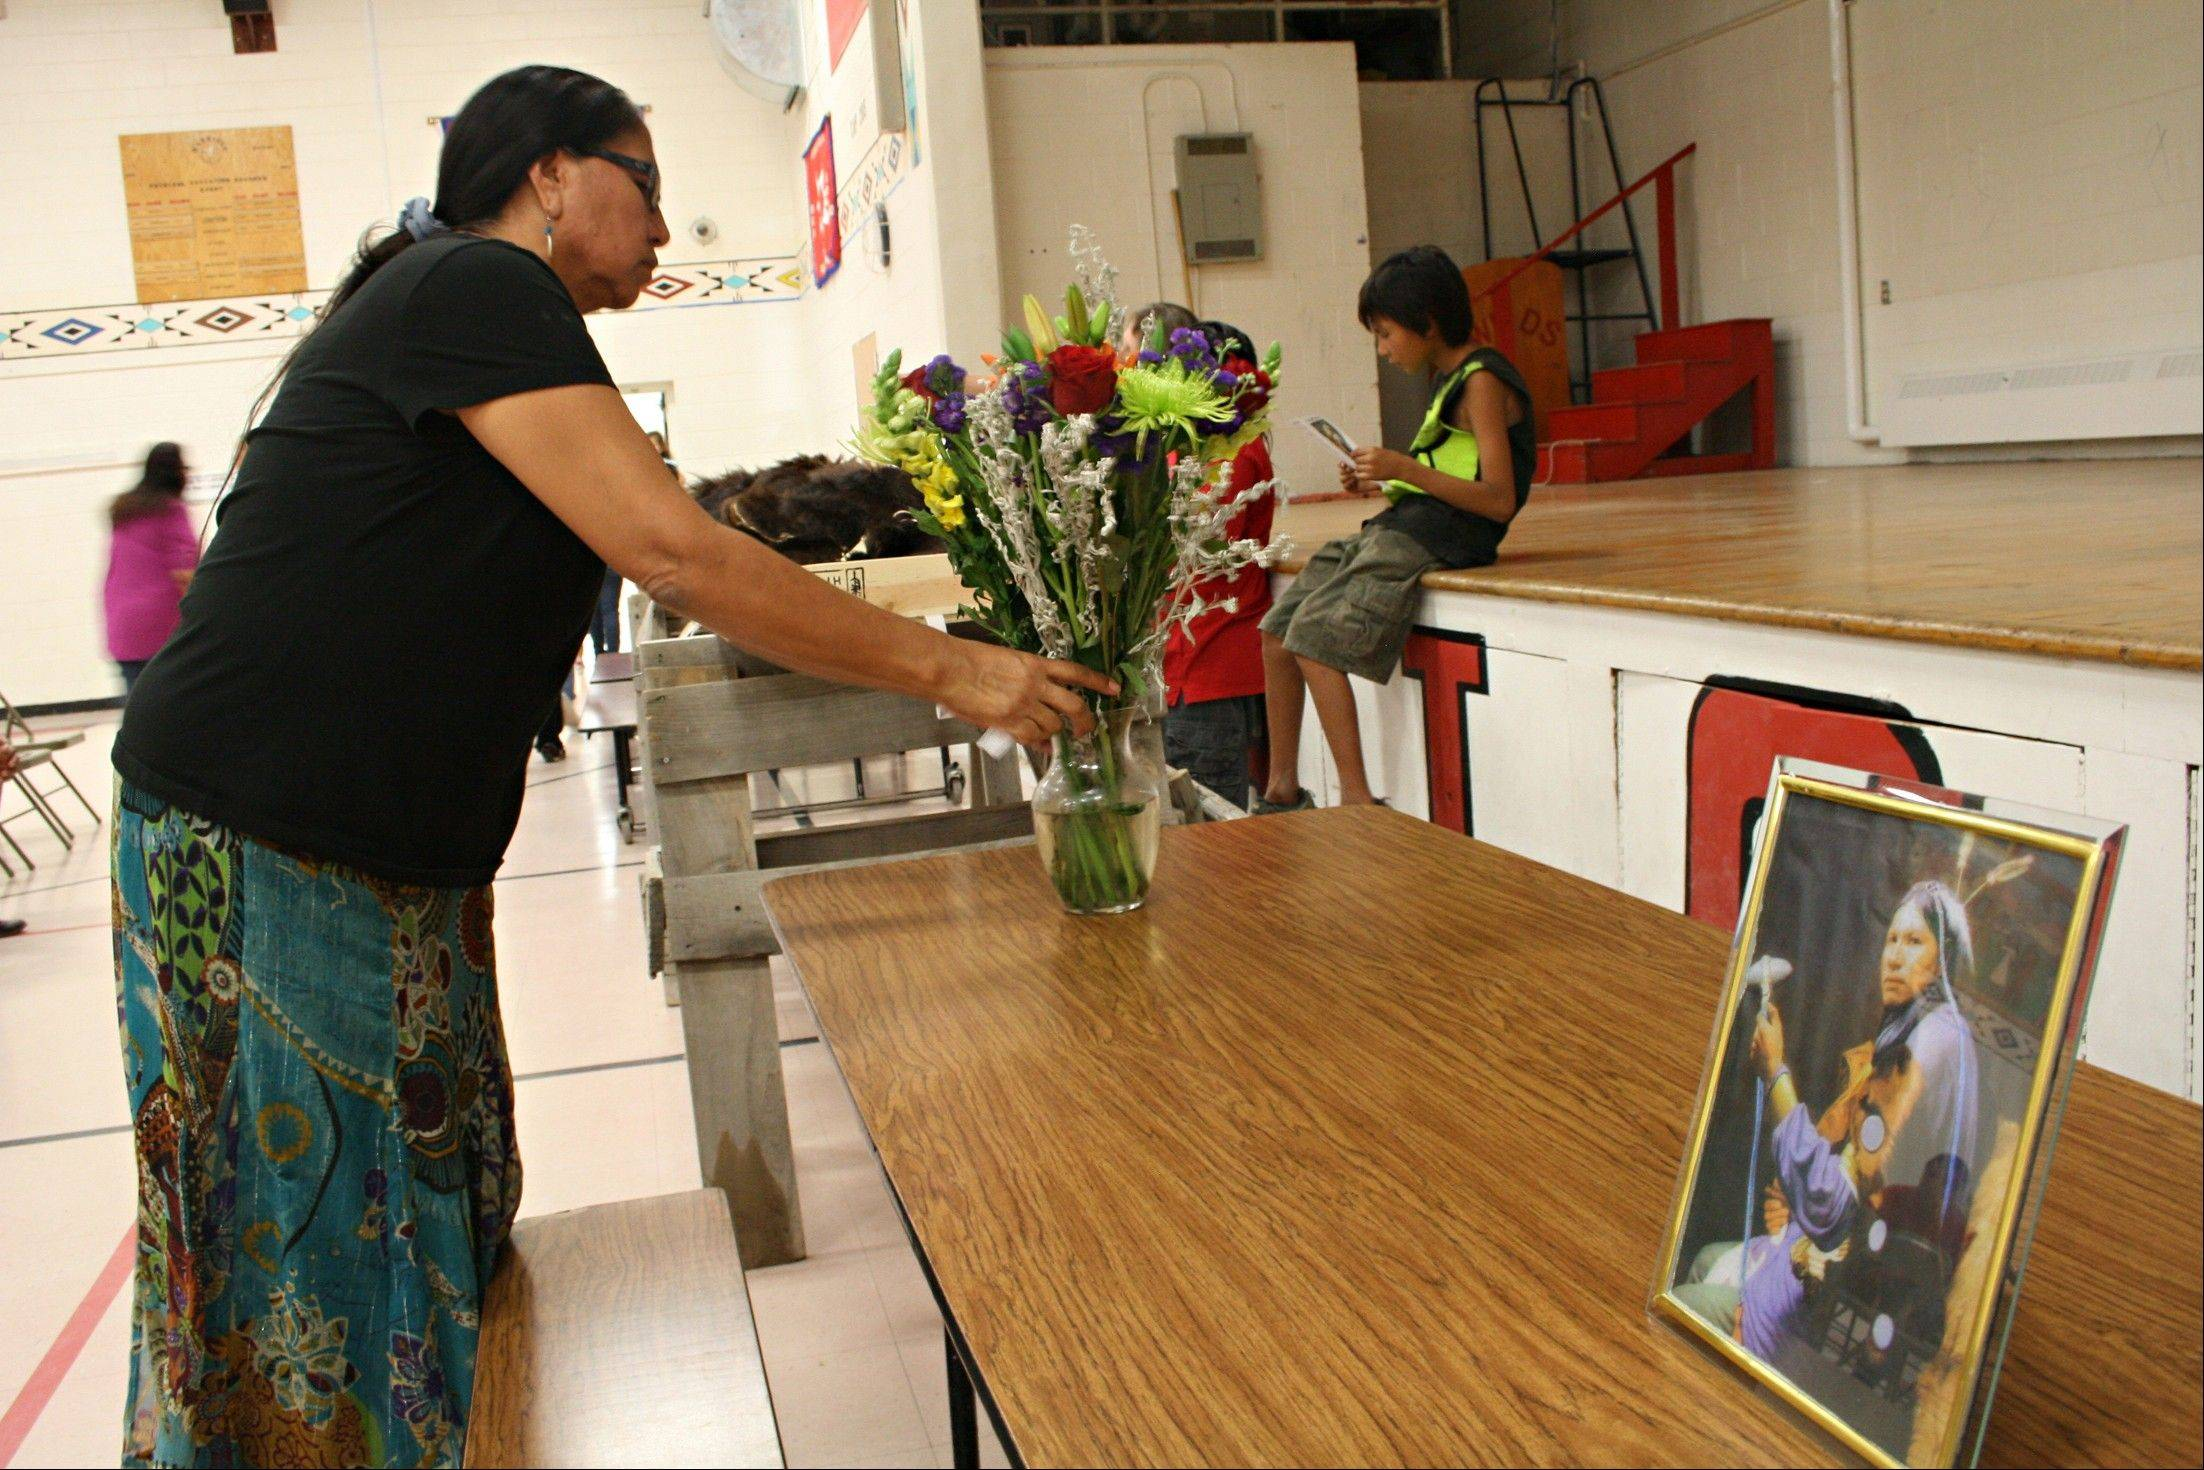 A woman places flowers Saturday next to a photo of Albert Afraid of Hawk at his wake service in Manderson, S.D. Afraid of Hawk, a member of the Oglala Sioux Tribe, died 112 years ago while performing with Buffalo Bill's Wild West show.